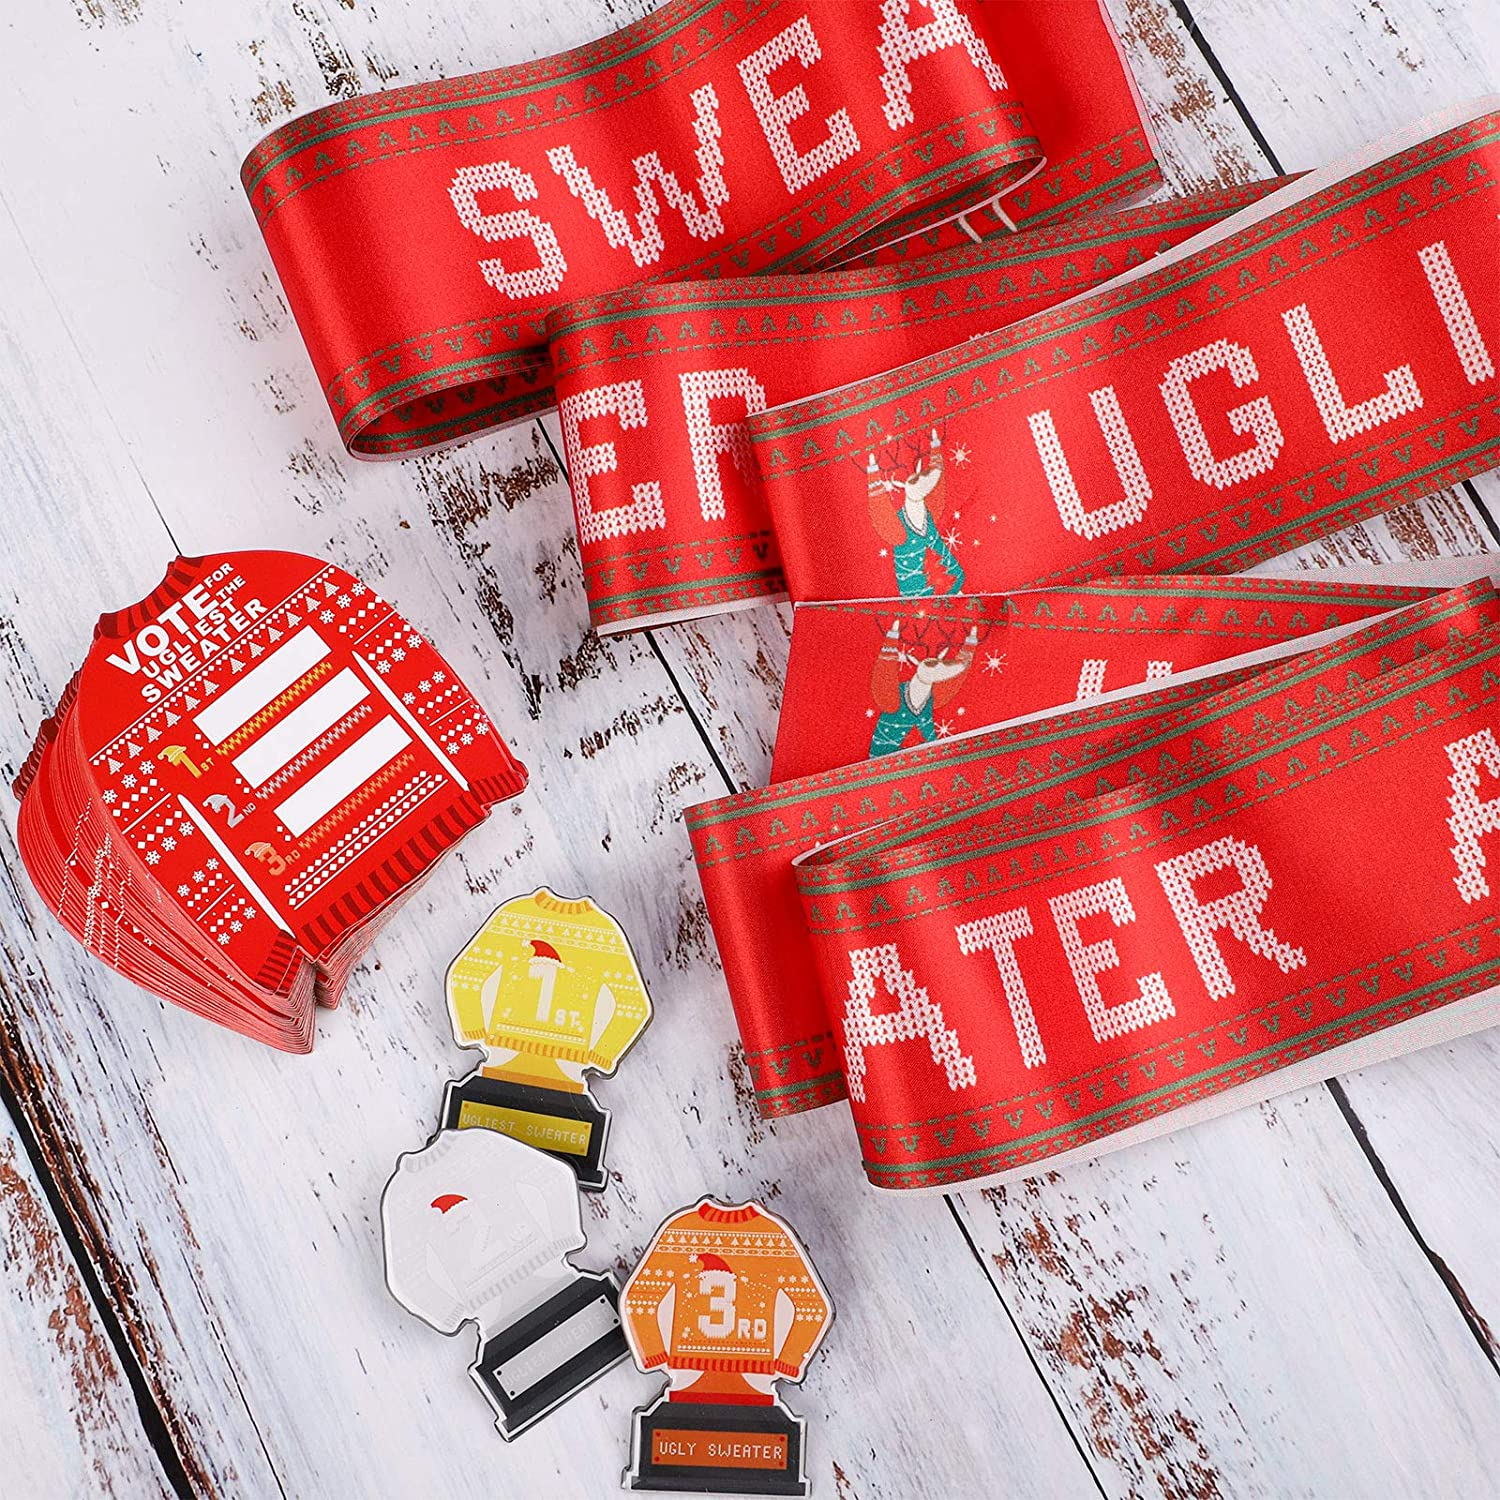 URATOT 3 Pieces Christmas Ugliest Sweater Award Sashes and 3 Pieces Top Three Sweater Trophy Shape Medal Badge for Christmas Sweater Party Supplies